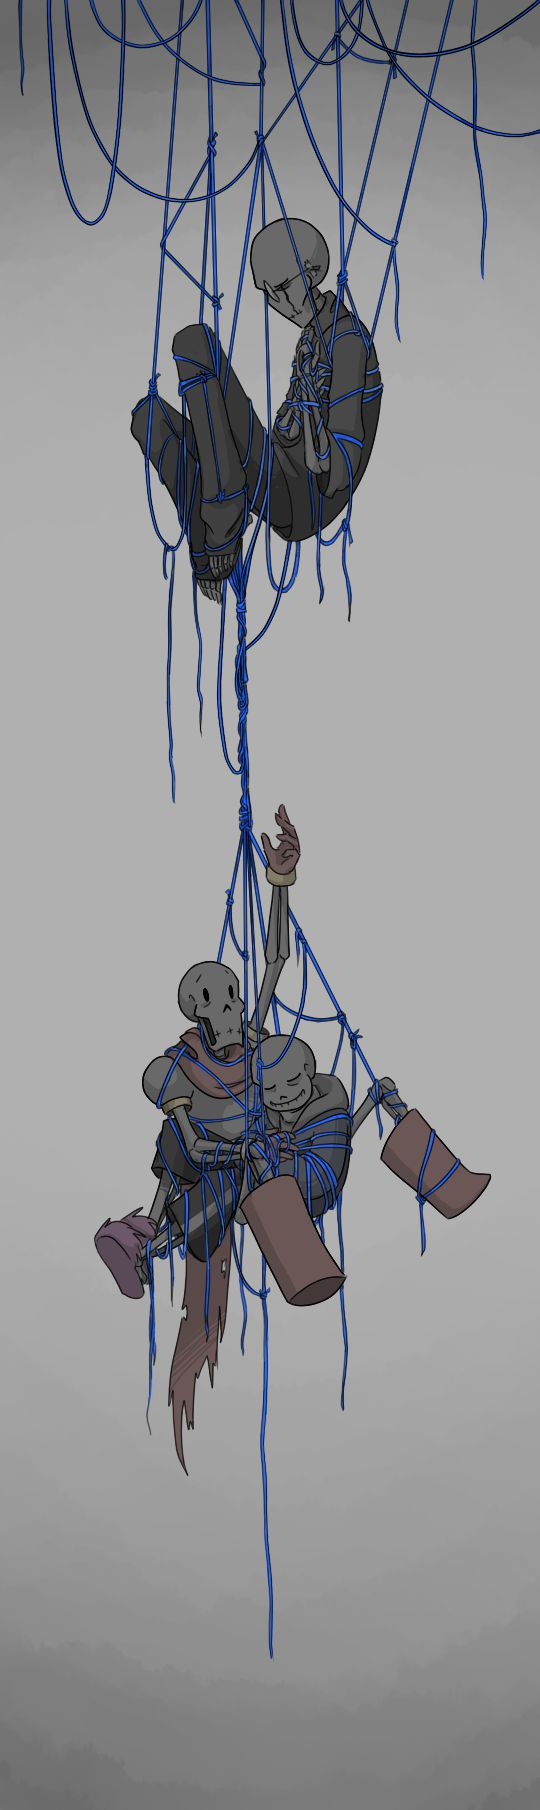 welcome to maudlin font skeleton comic emporium handplates stuff is organized in this separate folder